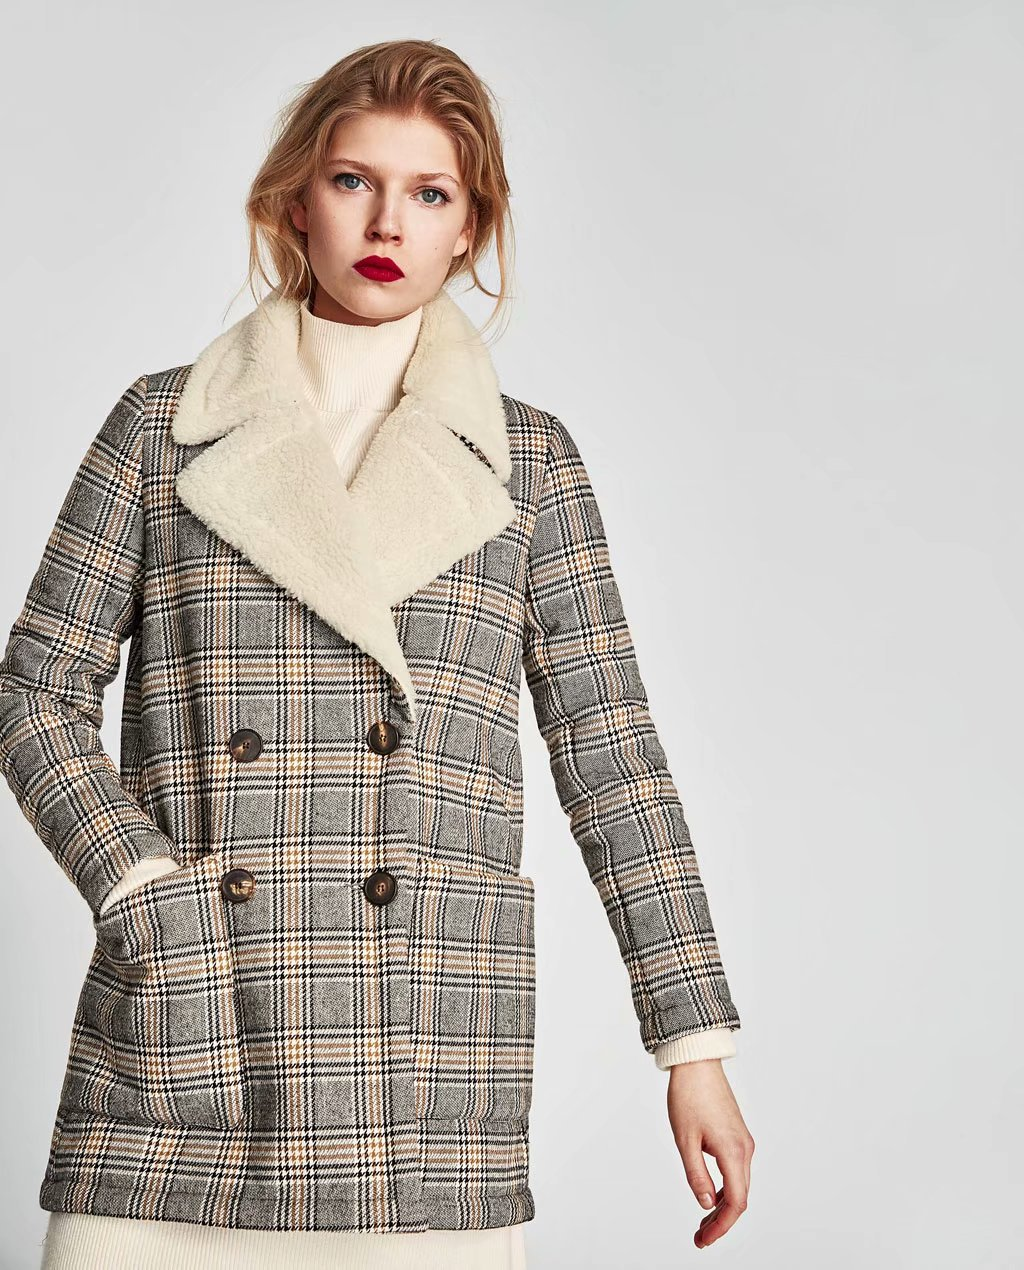 2018 Autumn And Winter New Style Europe And America Fashion Trend Of The Wind Joint Plaid Lambs Wool Overcoat